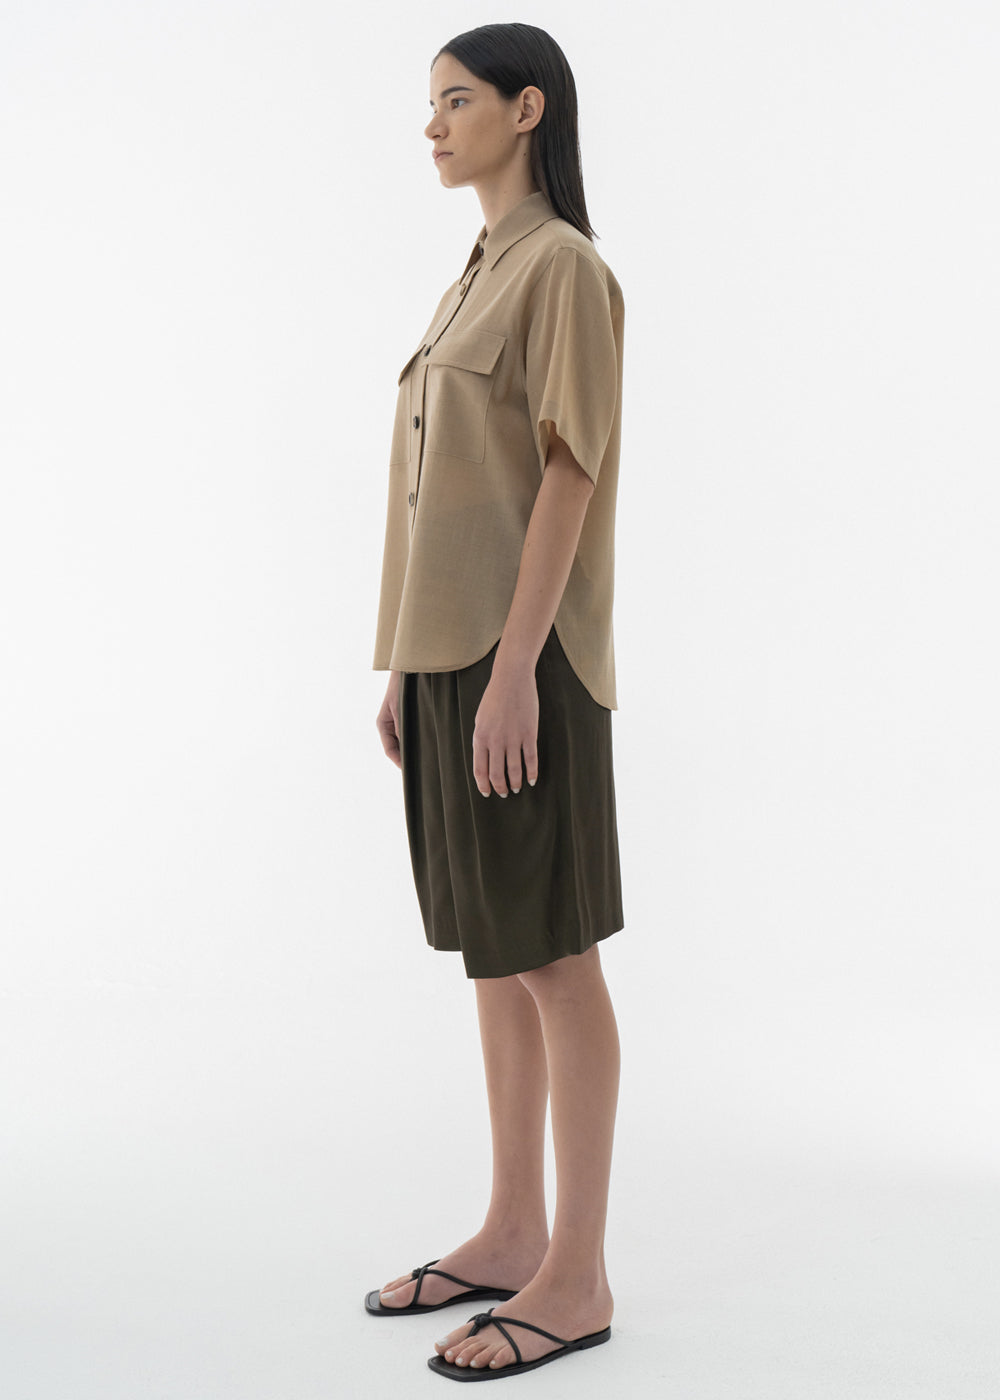 SATIN PLEATS HALF PANTS OLIVE KHAKI